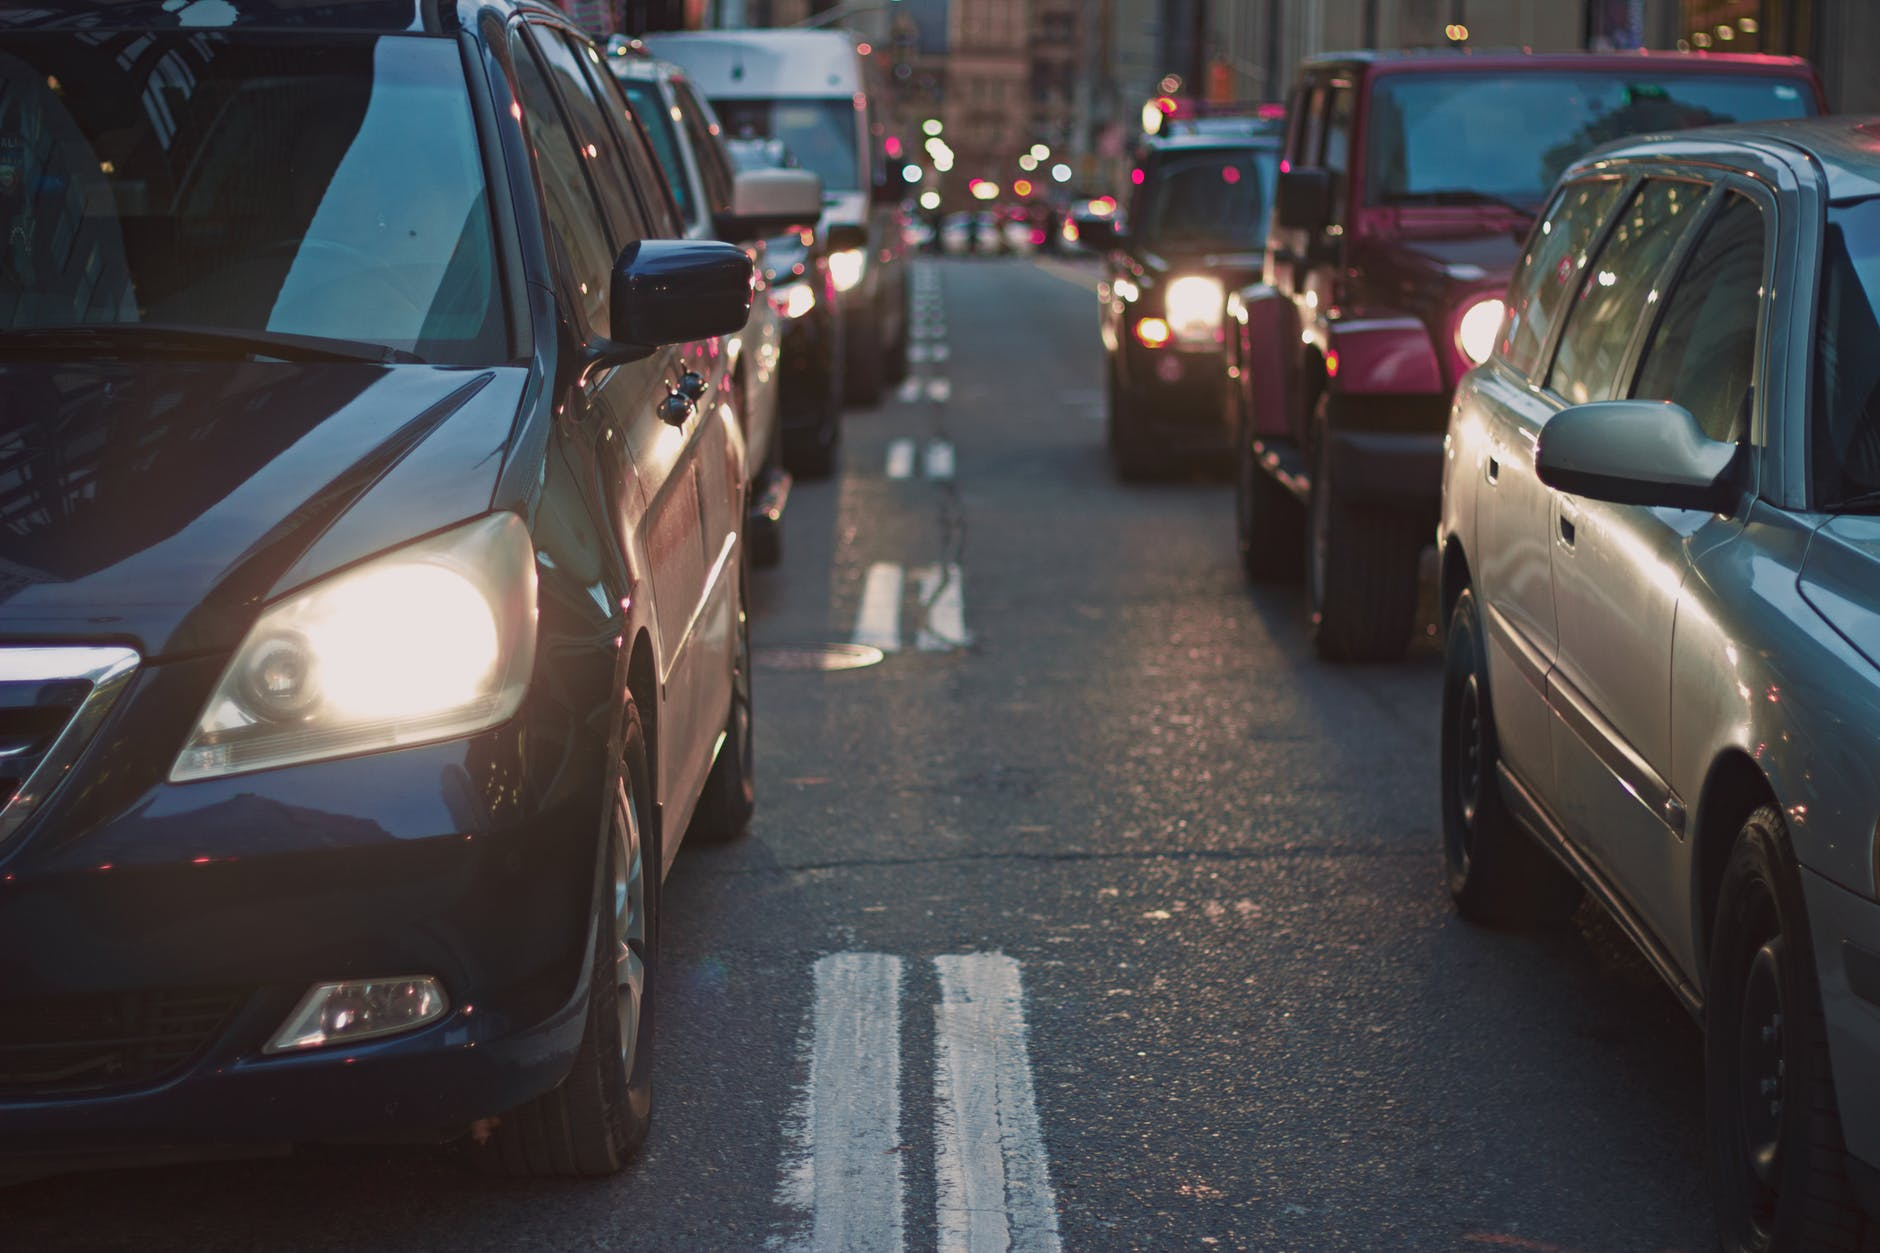 What Are Some Of The Most Common Causes Of Accidents